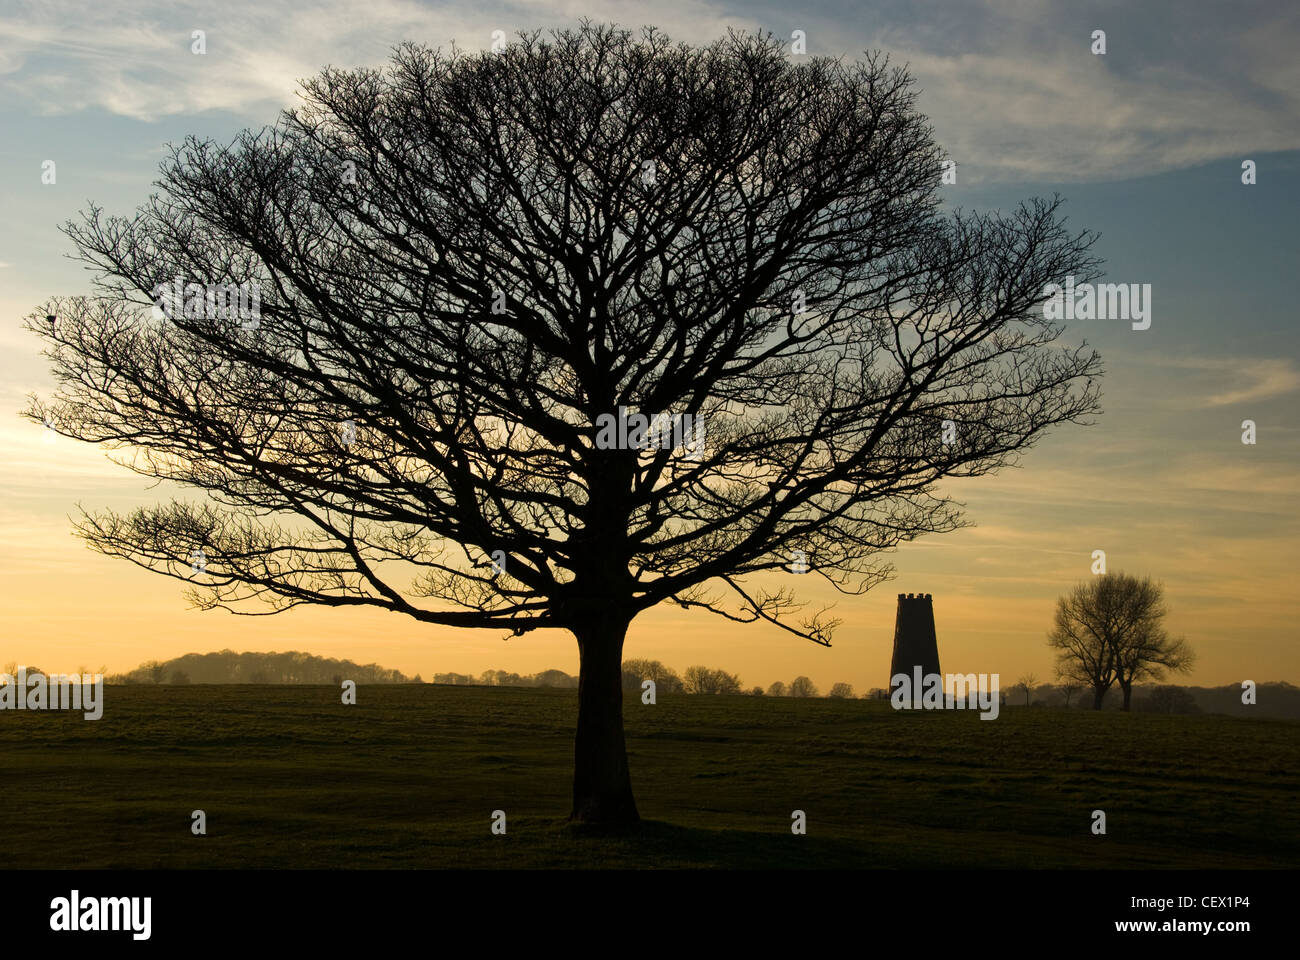 A view toward The Black Mill monument. Located on the pastureland outside Beverley known as Beverley Westwood. - Stock Image